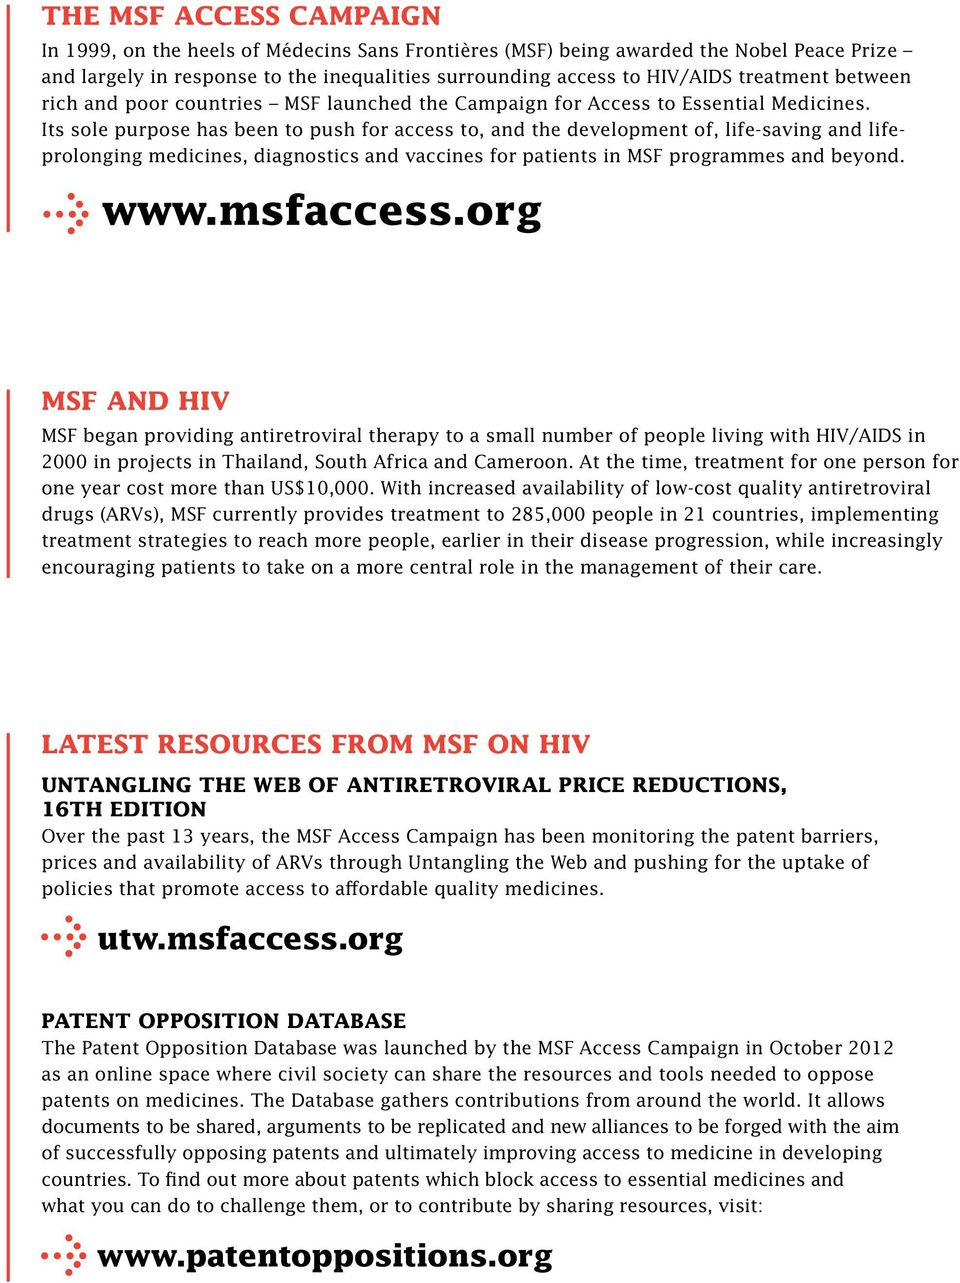 Its sole purpose has been to push for access to, and the development of, life-saving and lifeprolonging medicines, diagnostics and vaccines for patients in MSF programmes and beyond. www.msfaccess.